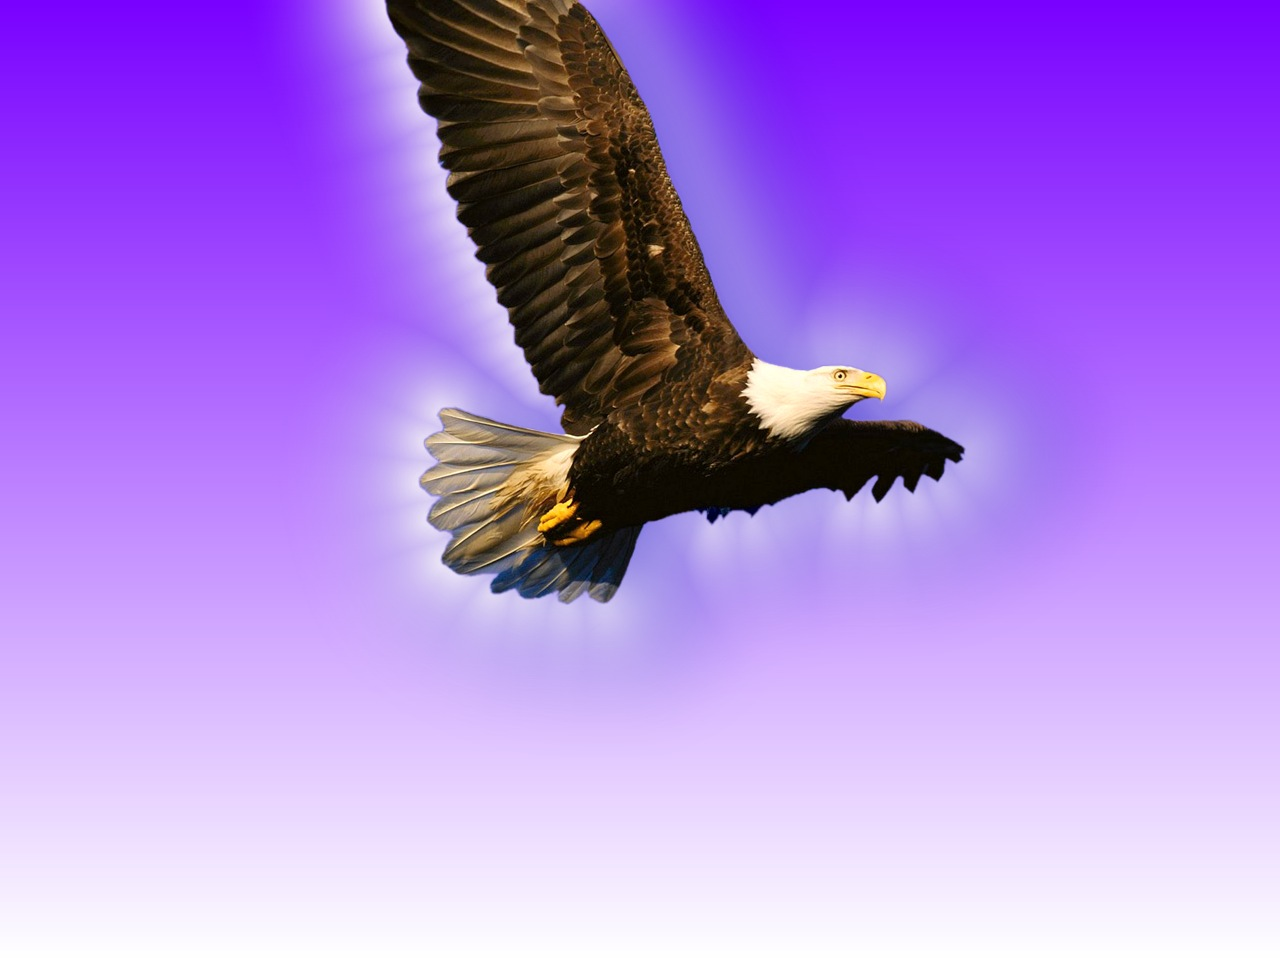 Flying Eagle Wallpaper 8350 Hd Wallpapers in Animals   Imagescicom 1280x960